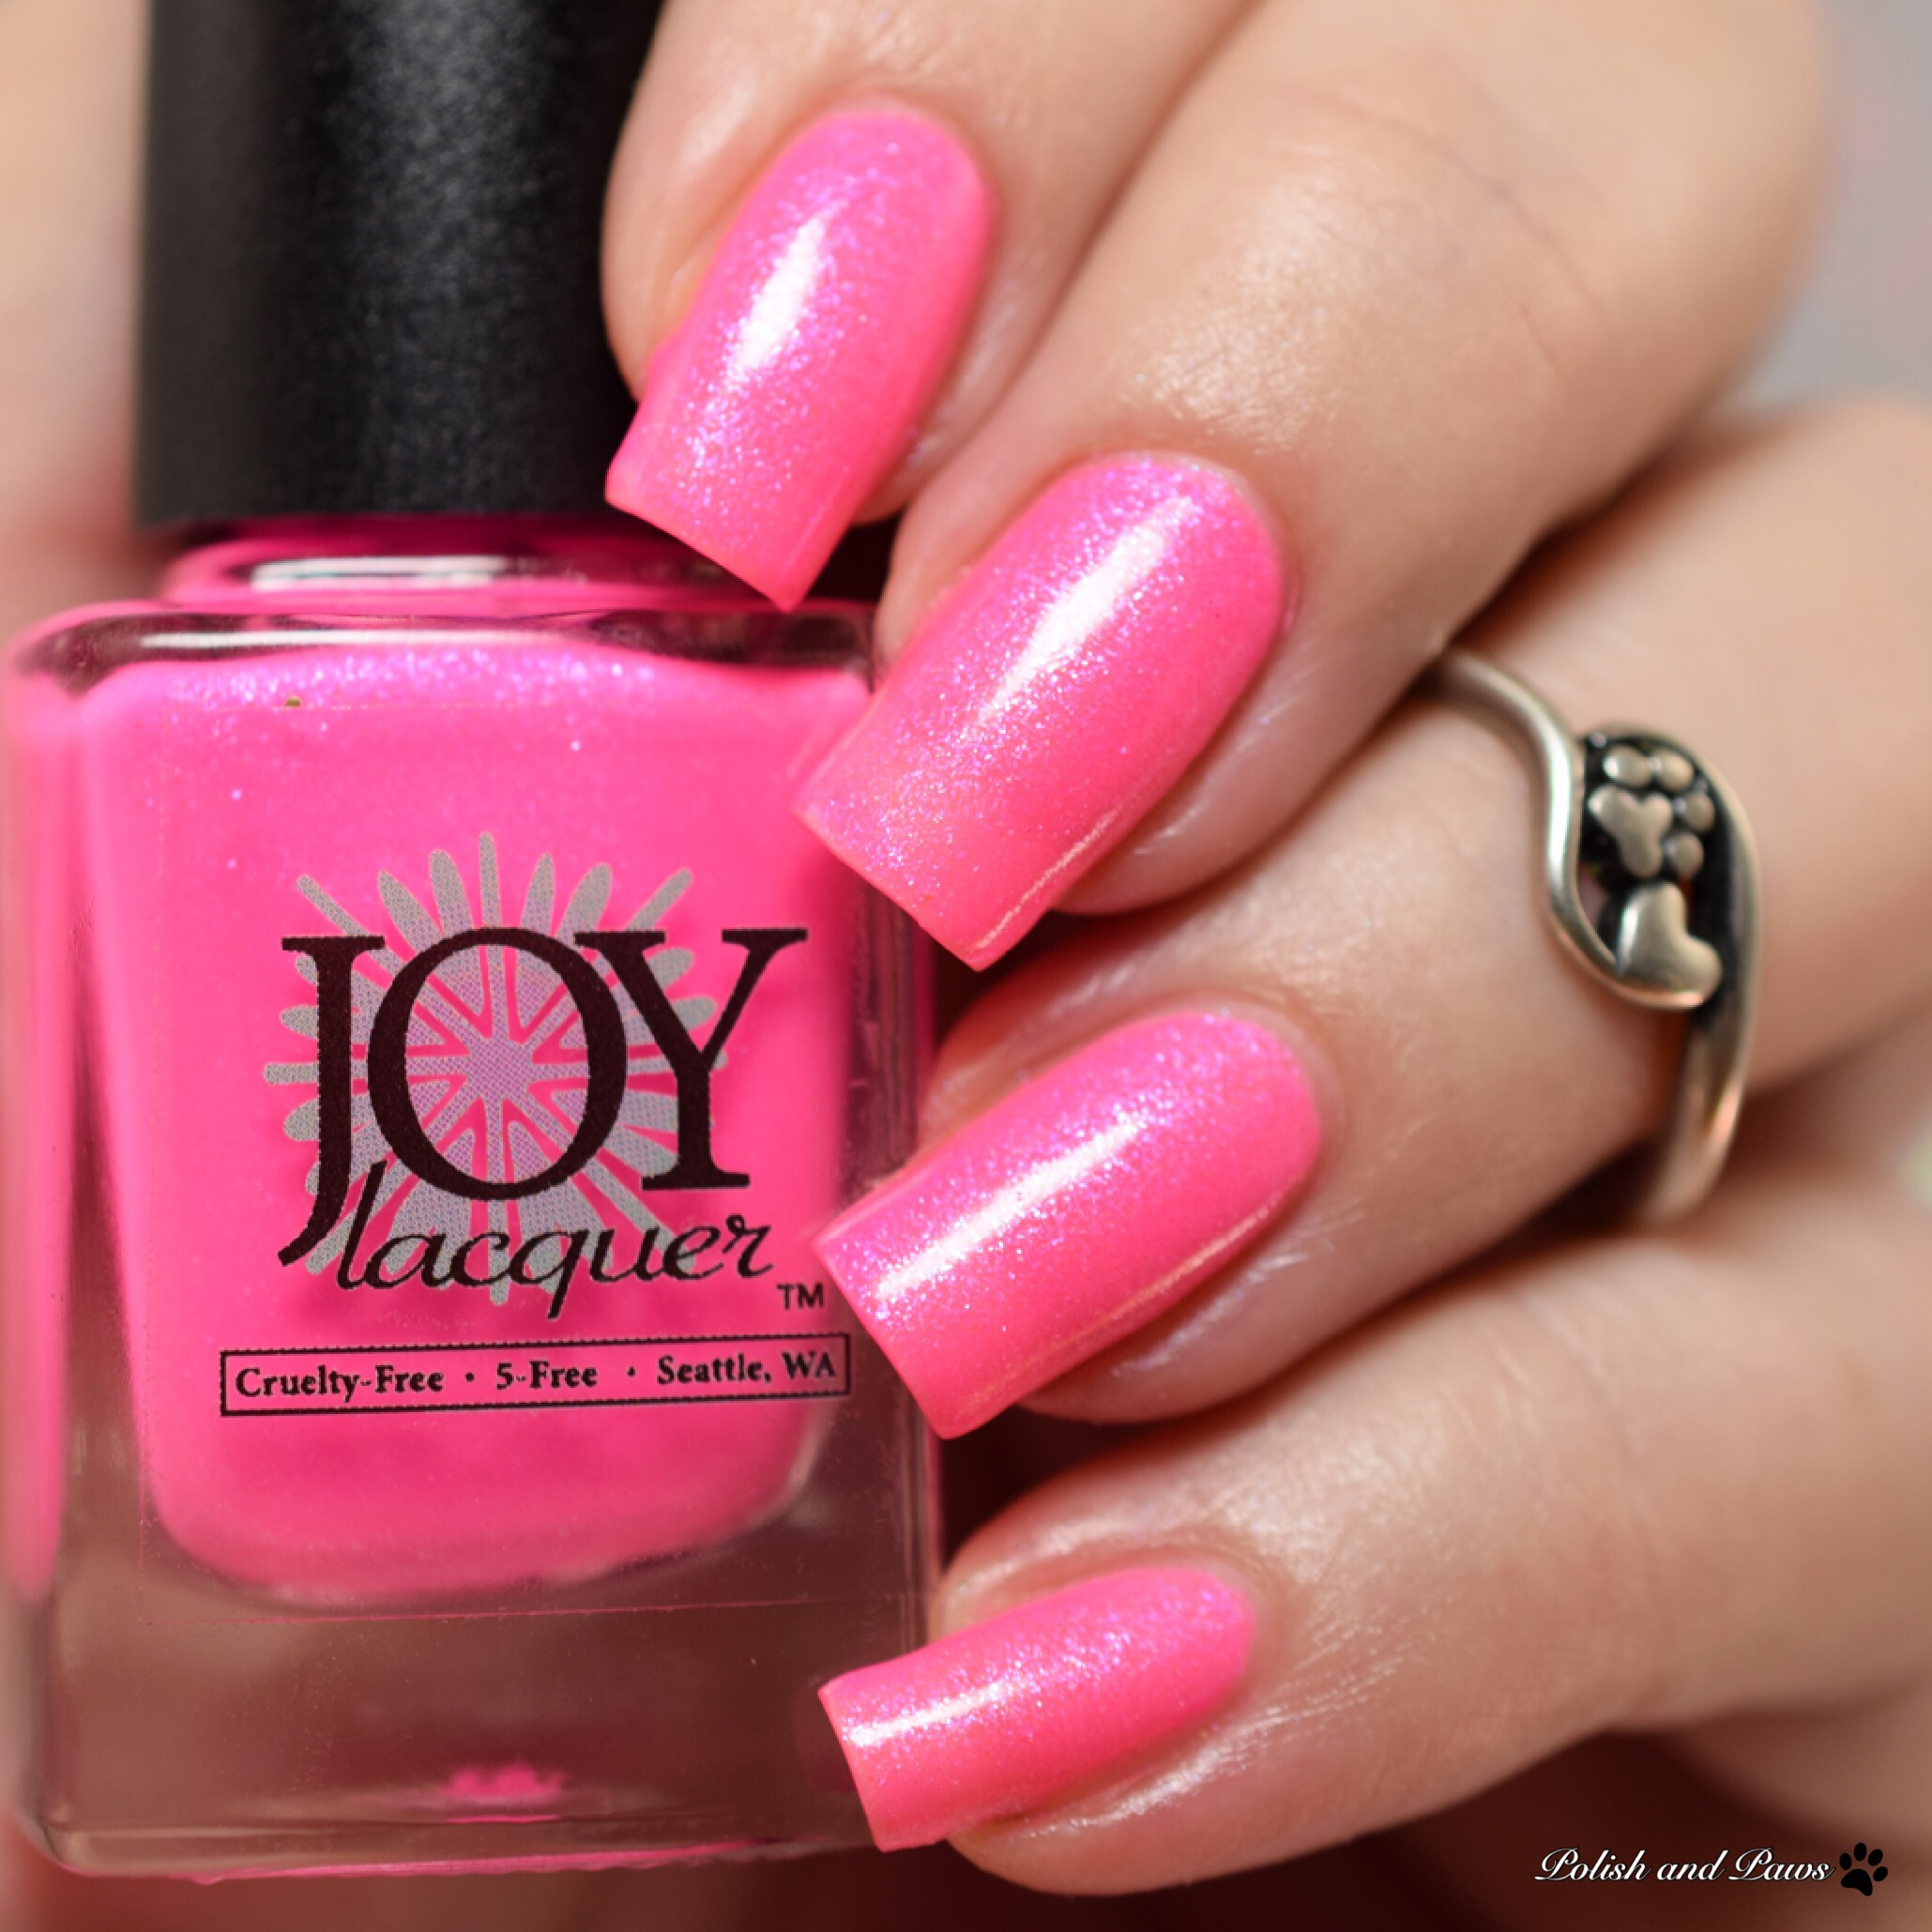 Joy Lacquer Birthday Suit and A Lei